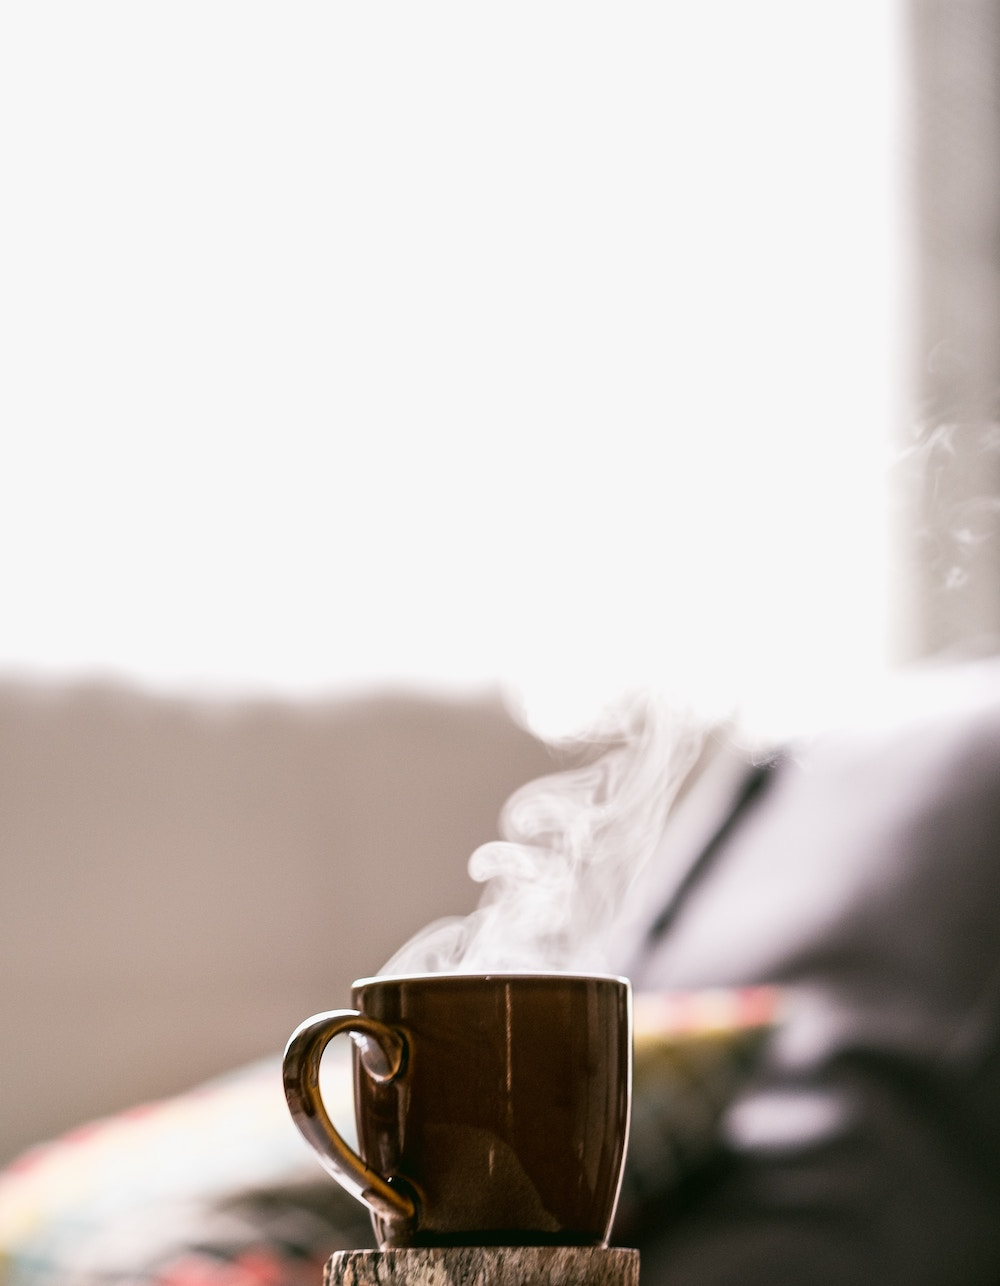 hot cup of coffee in the morning